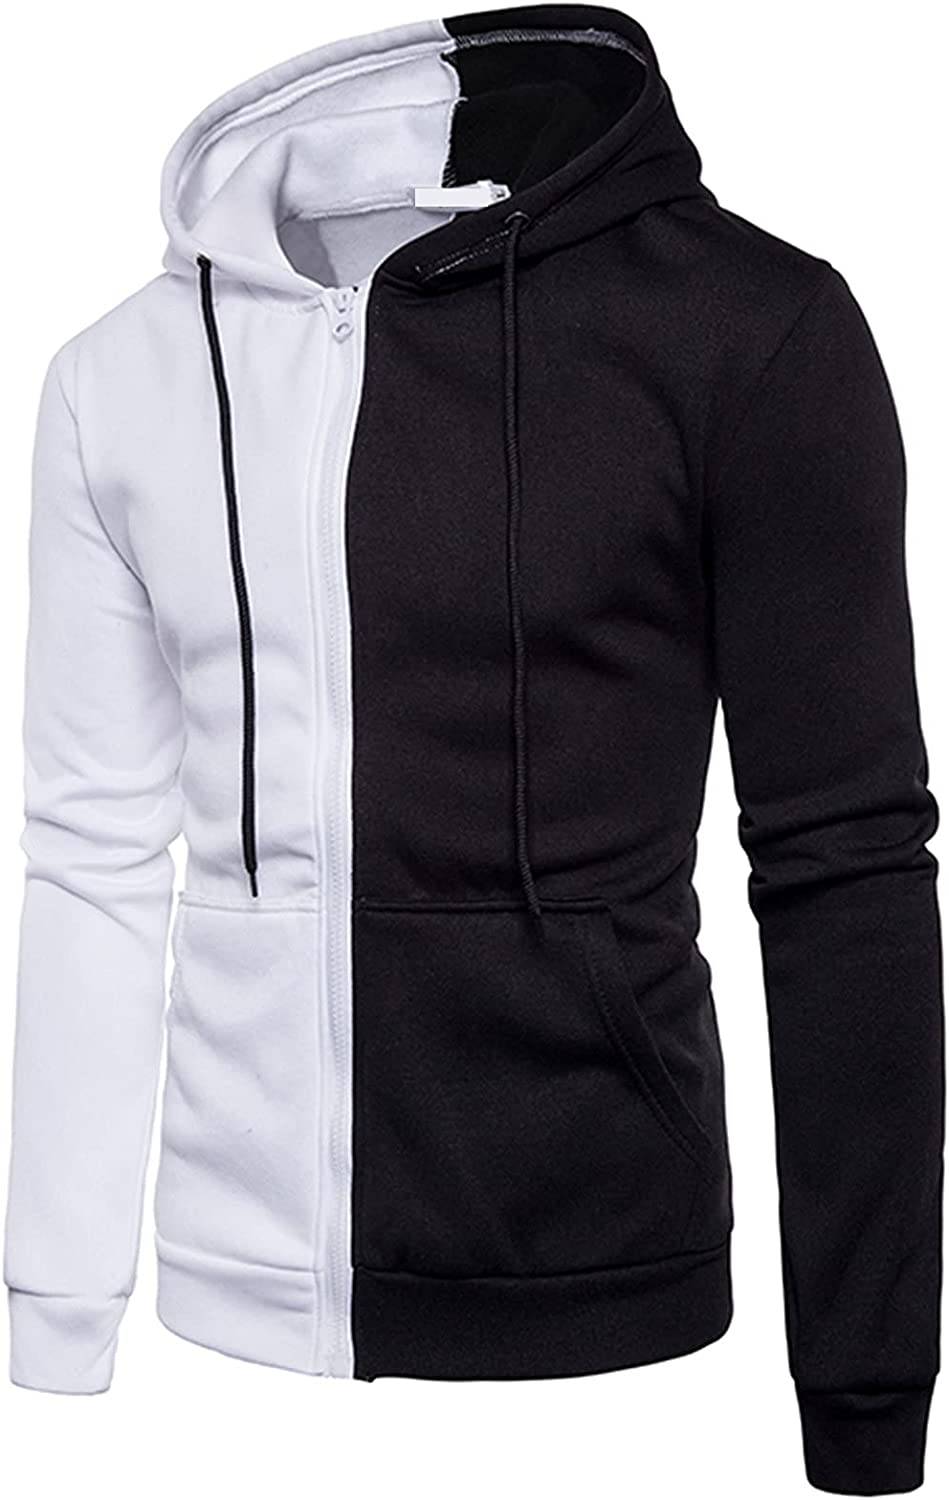 XXBR Fall Hoodies for Mens, Zipper Drawstring Hooded Sweatshirts Color Block Patchwork Workout Casual Pullover Jackets